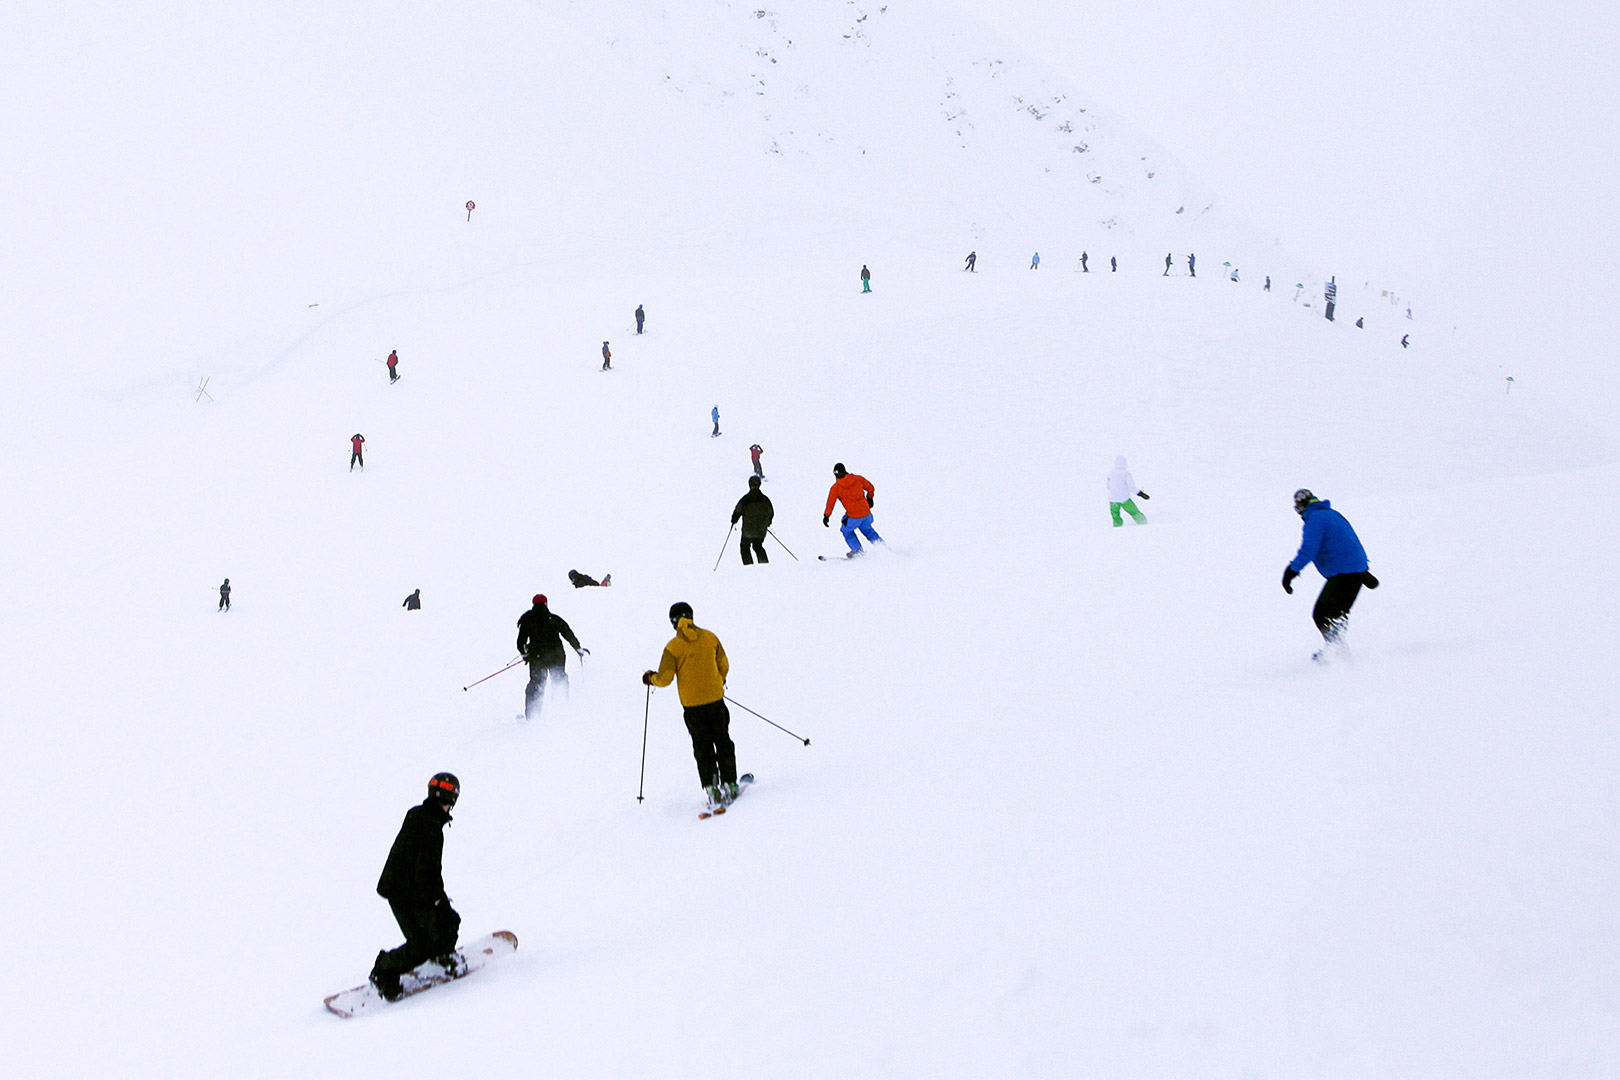 Picture of skiers and snowboarders at Alyeska Resort, Alaska